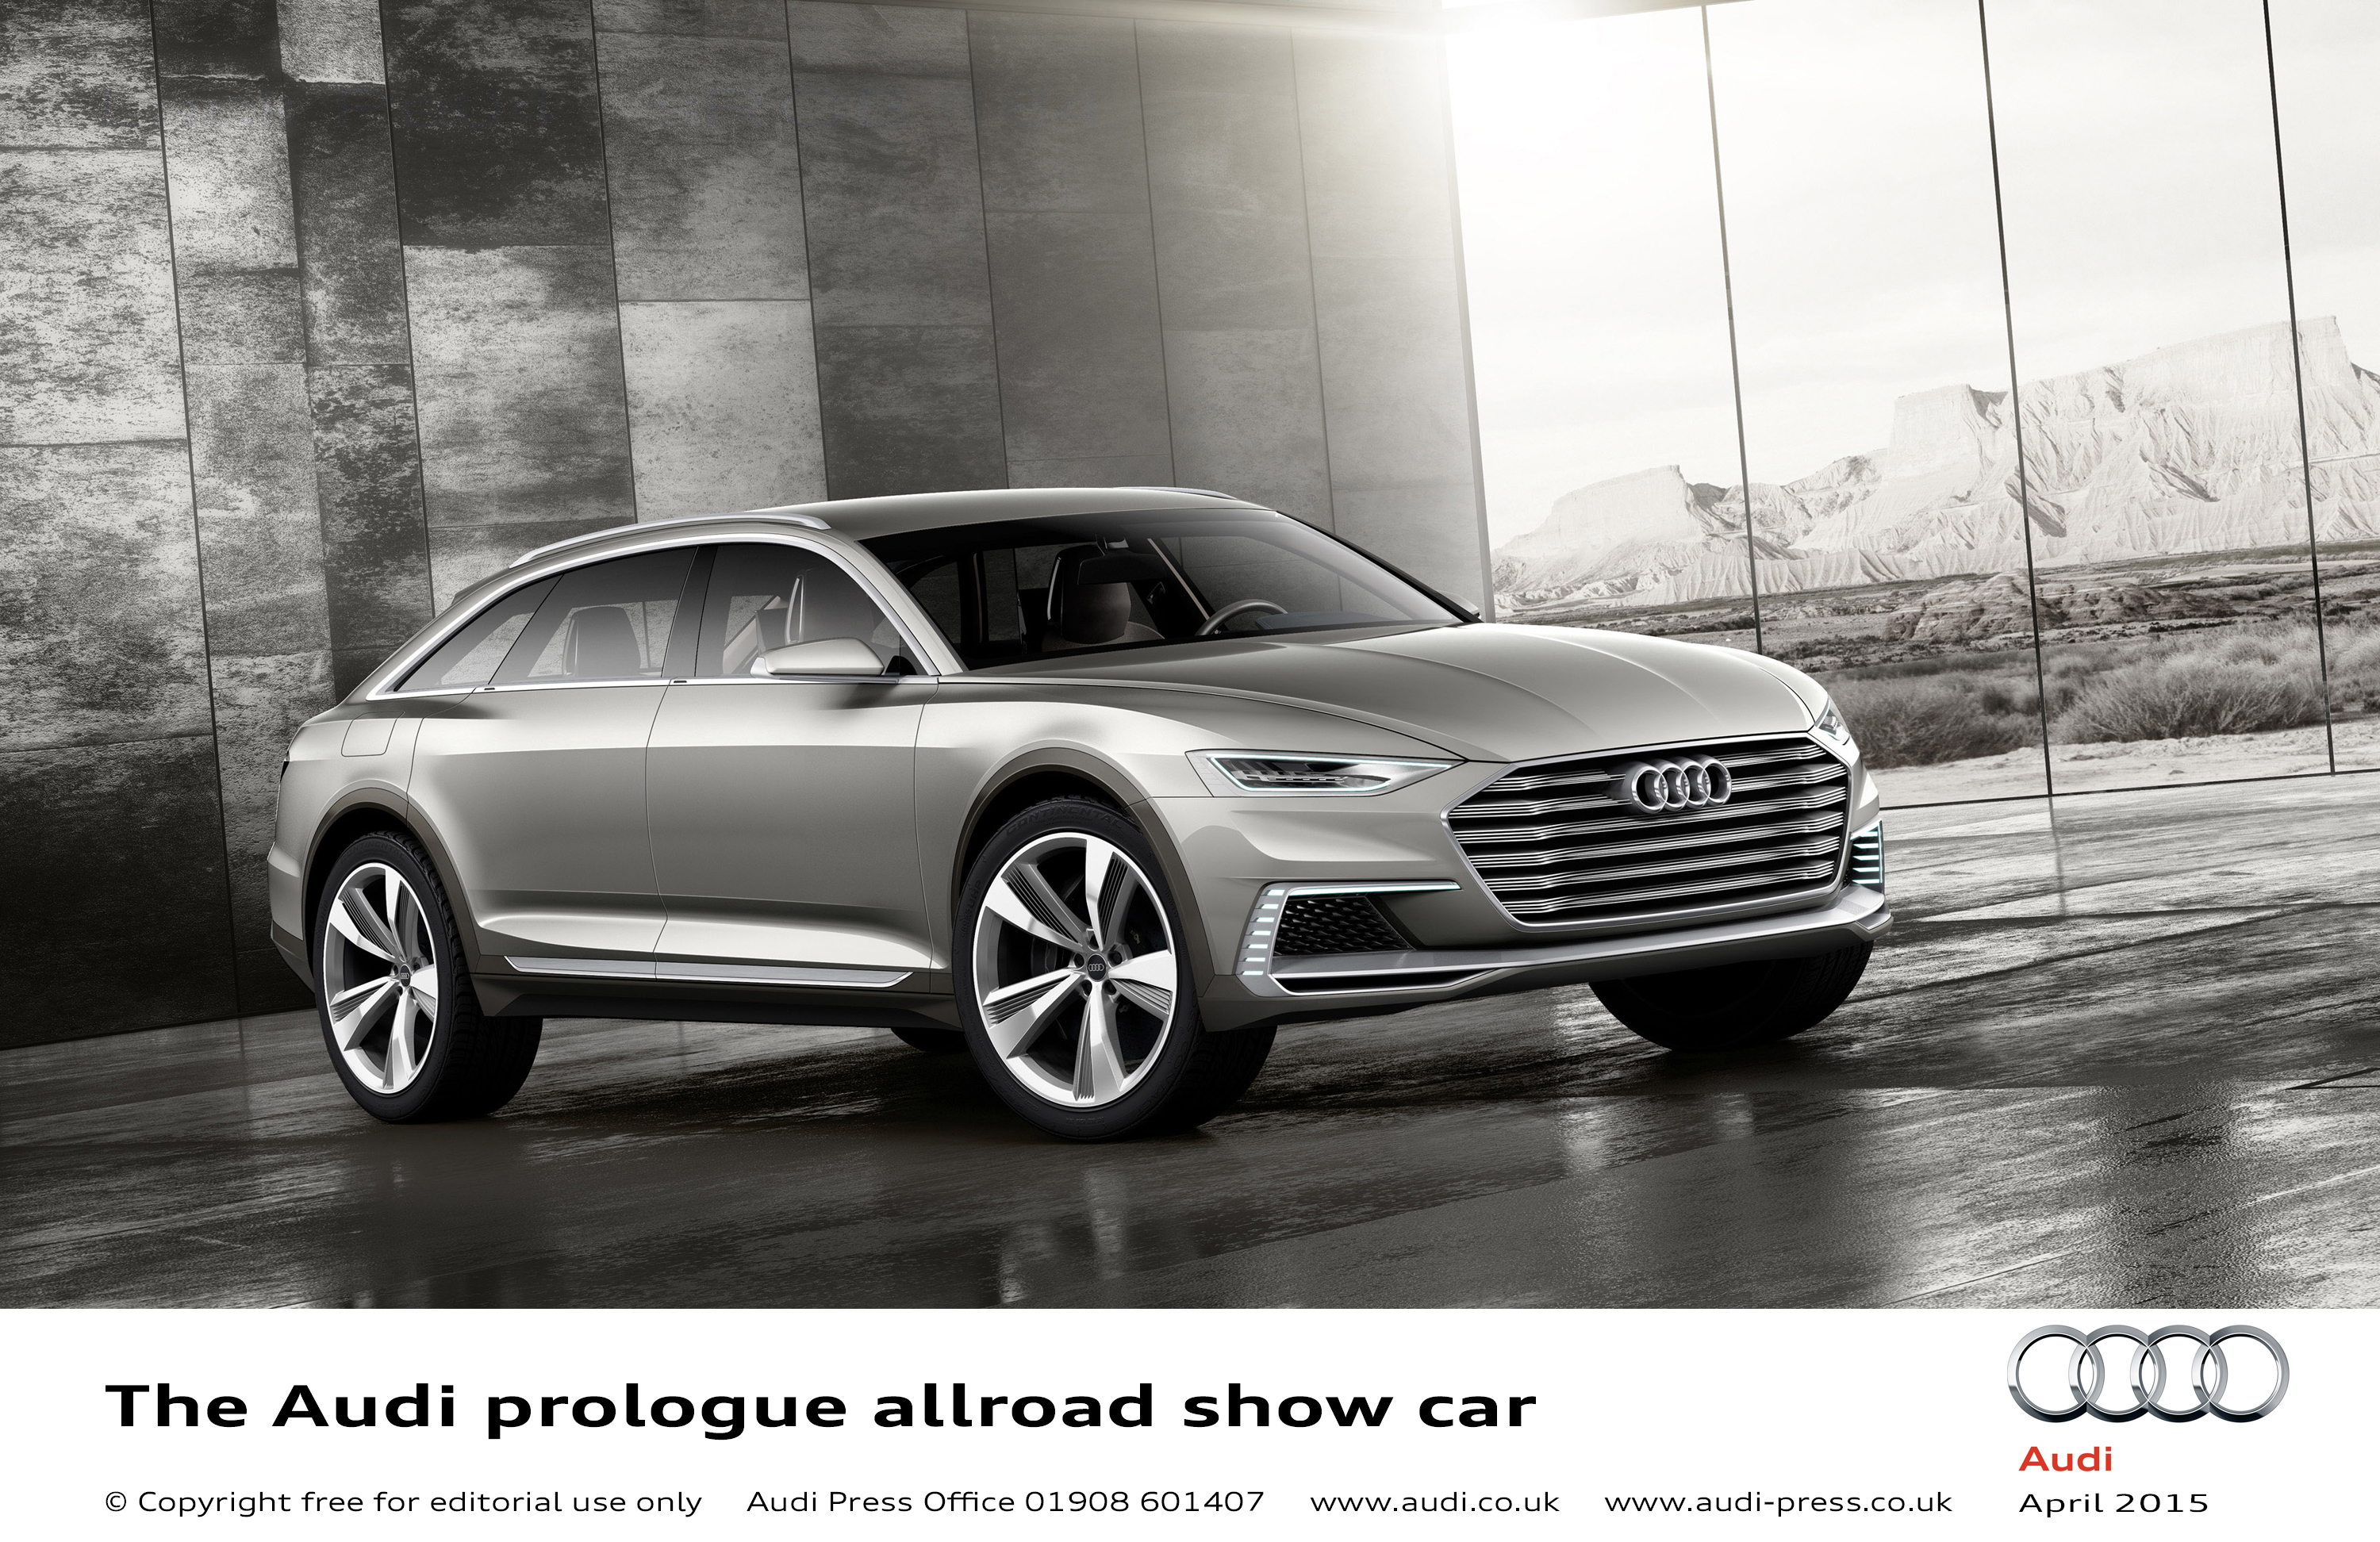 Audi Prologue Allroad Show Car Scales New Heights In